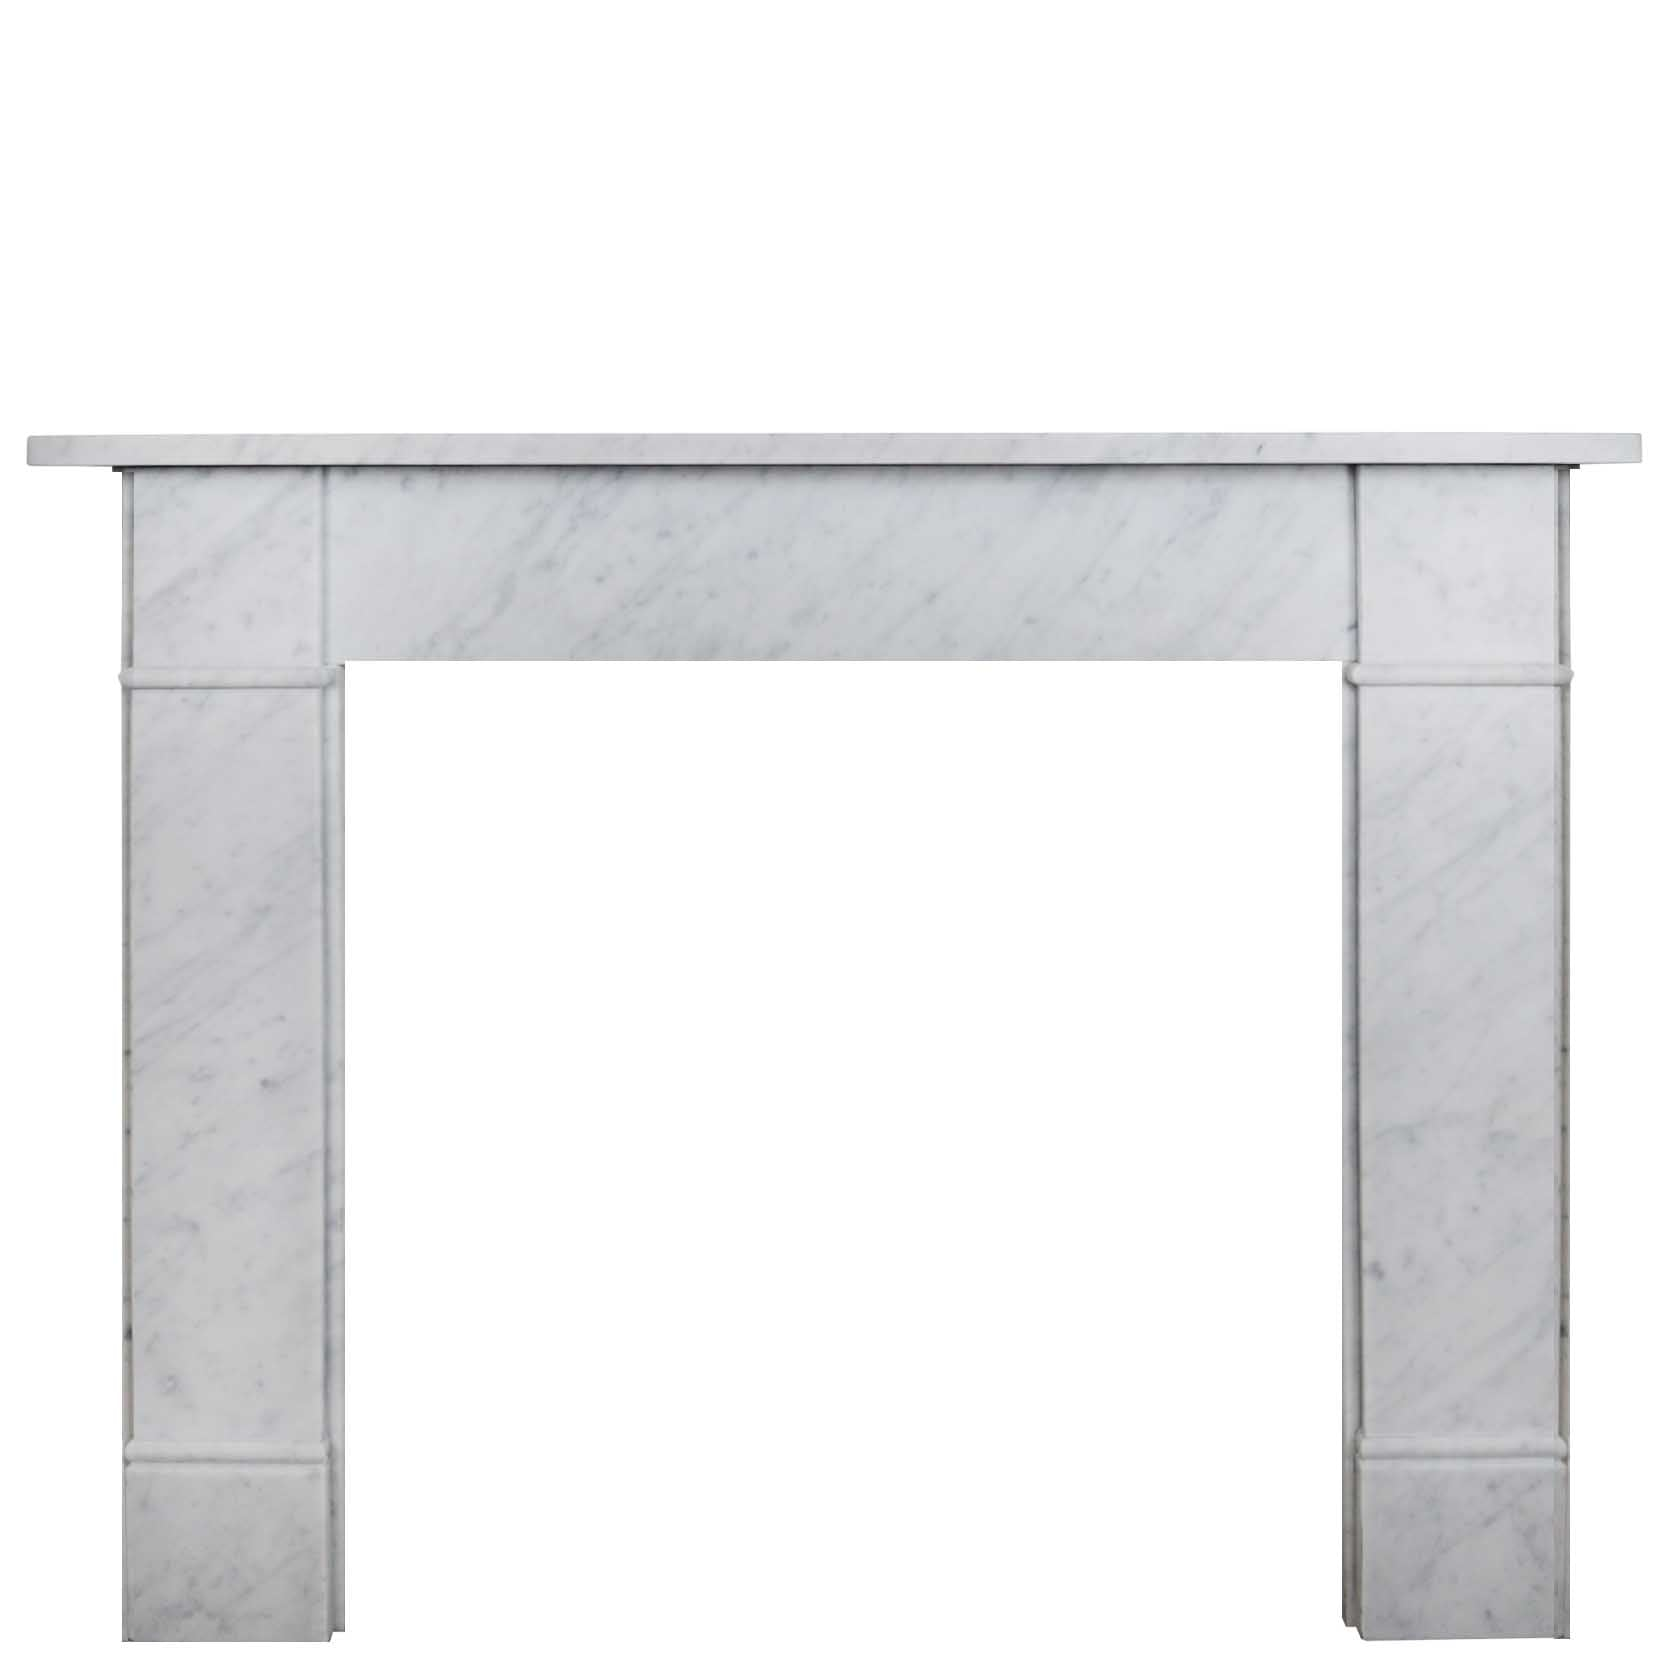 Carrara Marble Fireplace Surround - The Architectural Forum